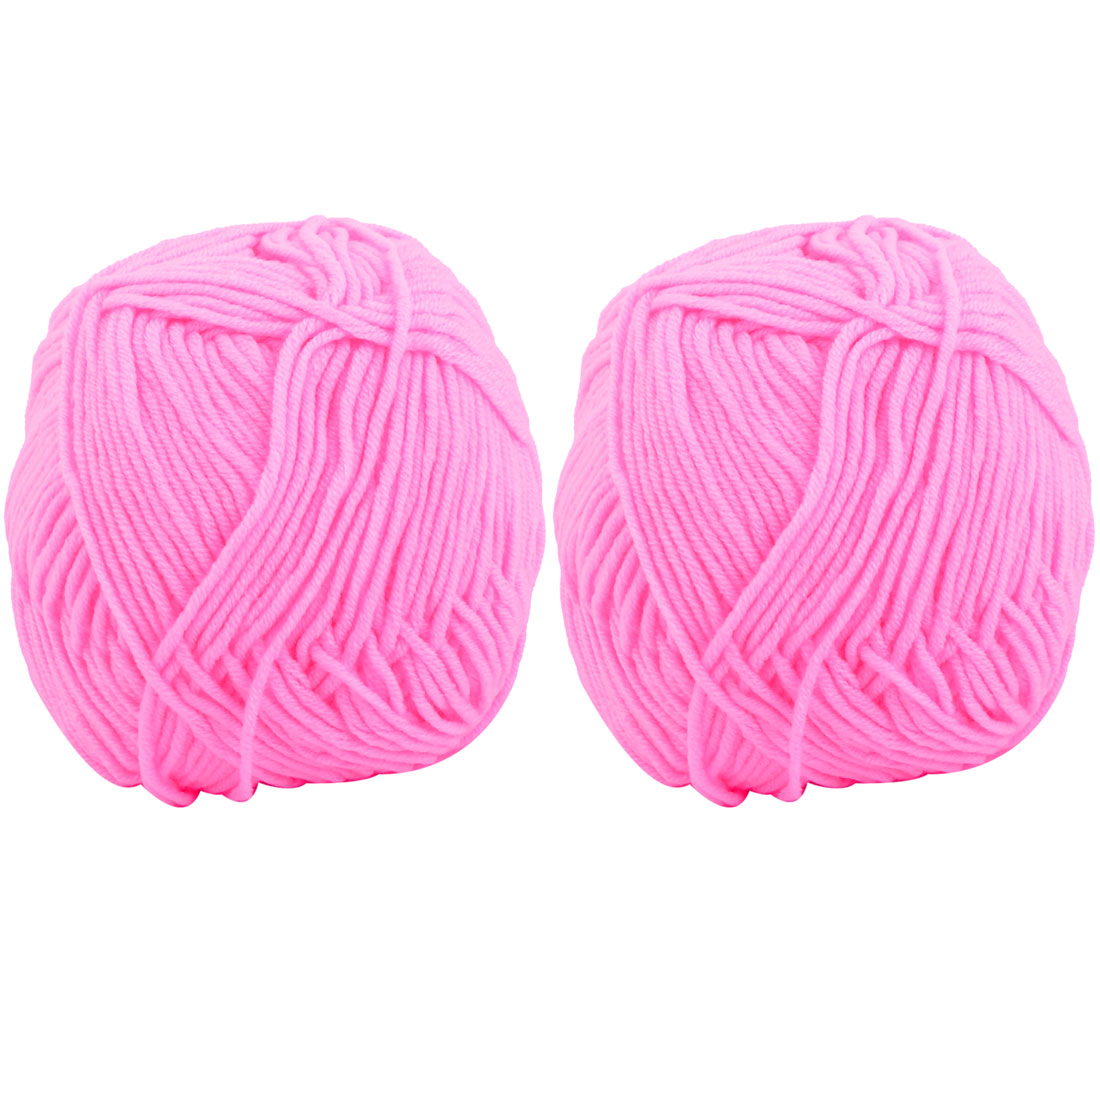 Gift DIY Handmade Scarf Shawl Sweater Knitting Weaving Yarn Dark Pink 110g 2pcs